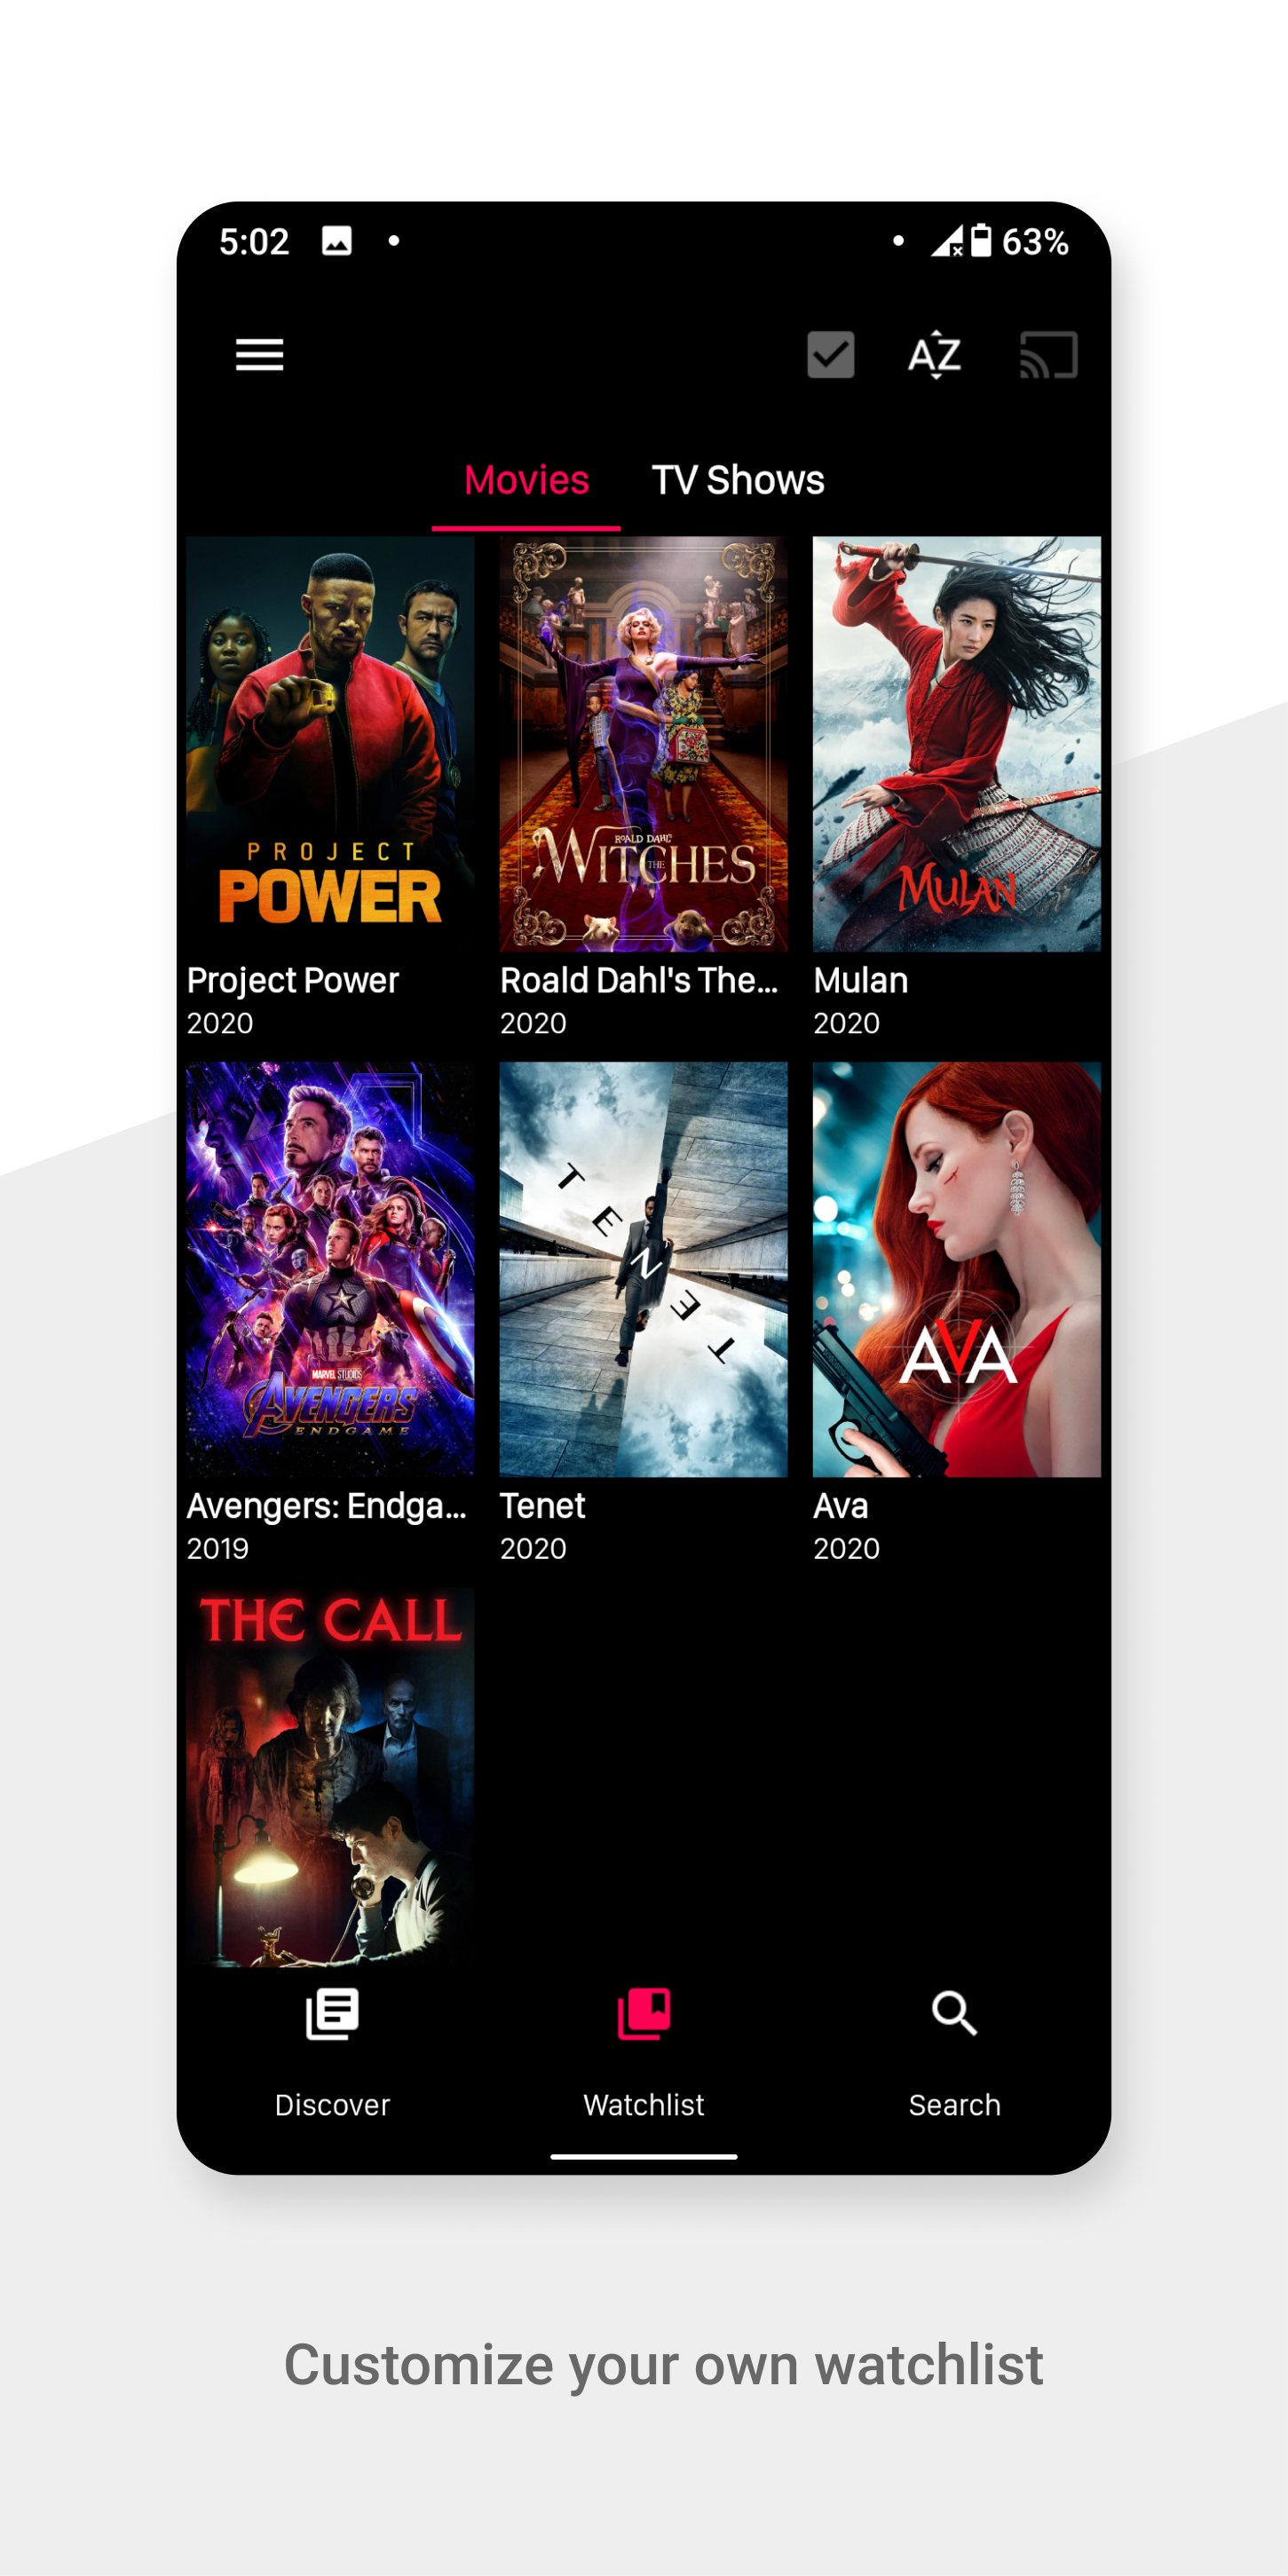 Viva TV Apk - Best free app to watch movies on Android (7)